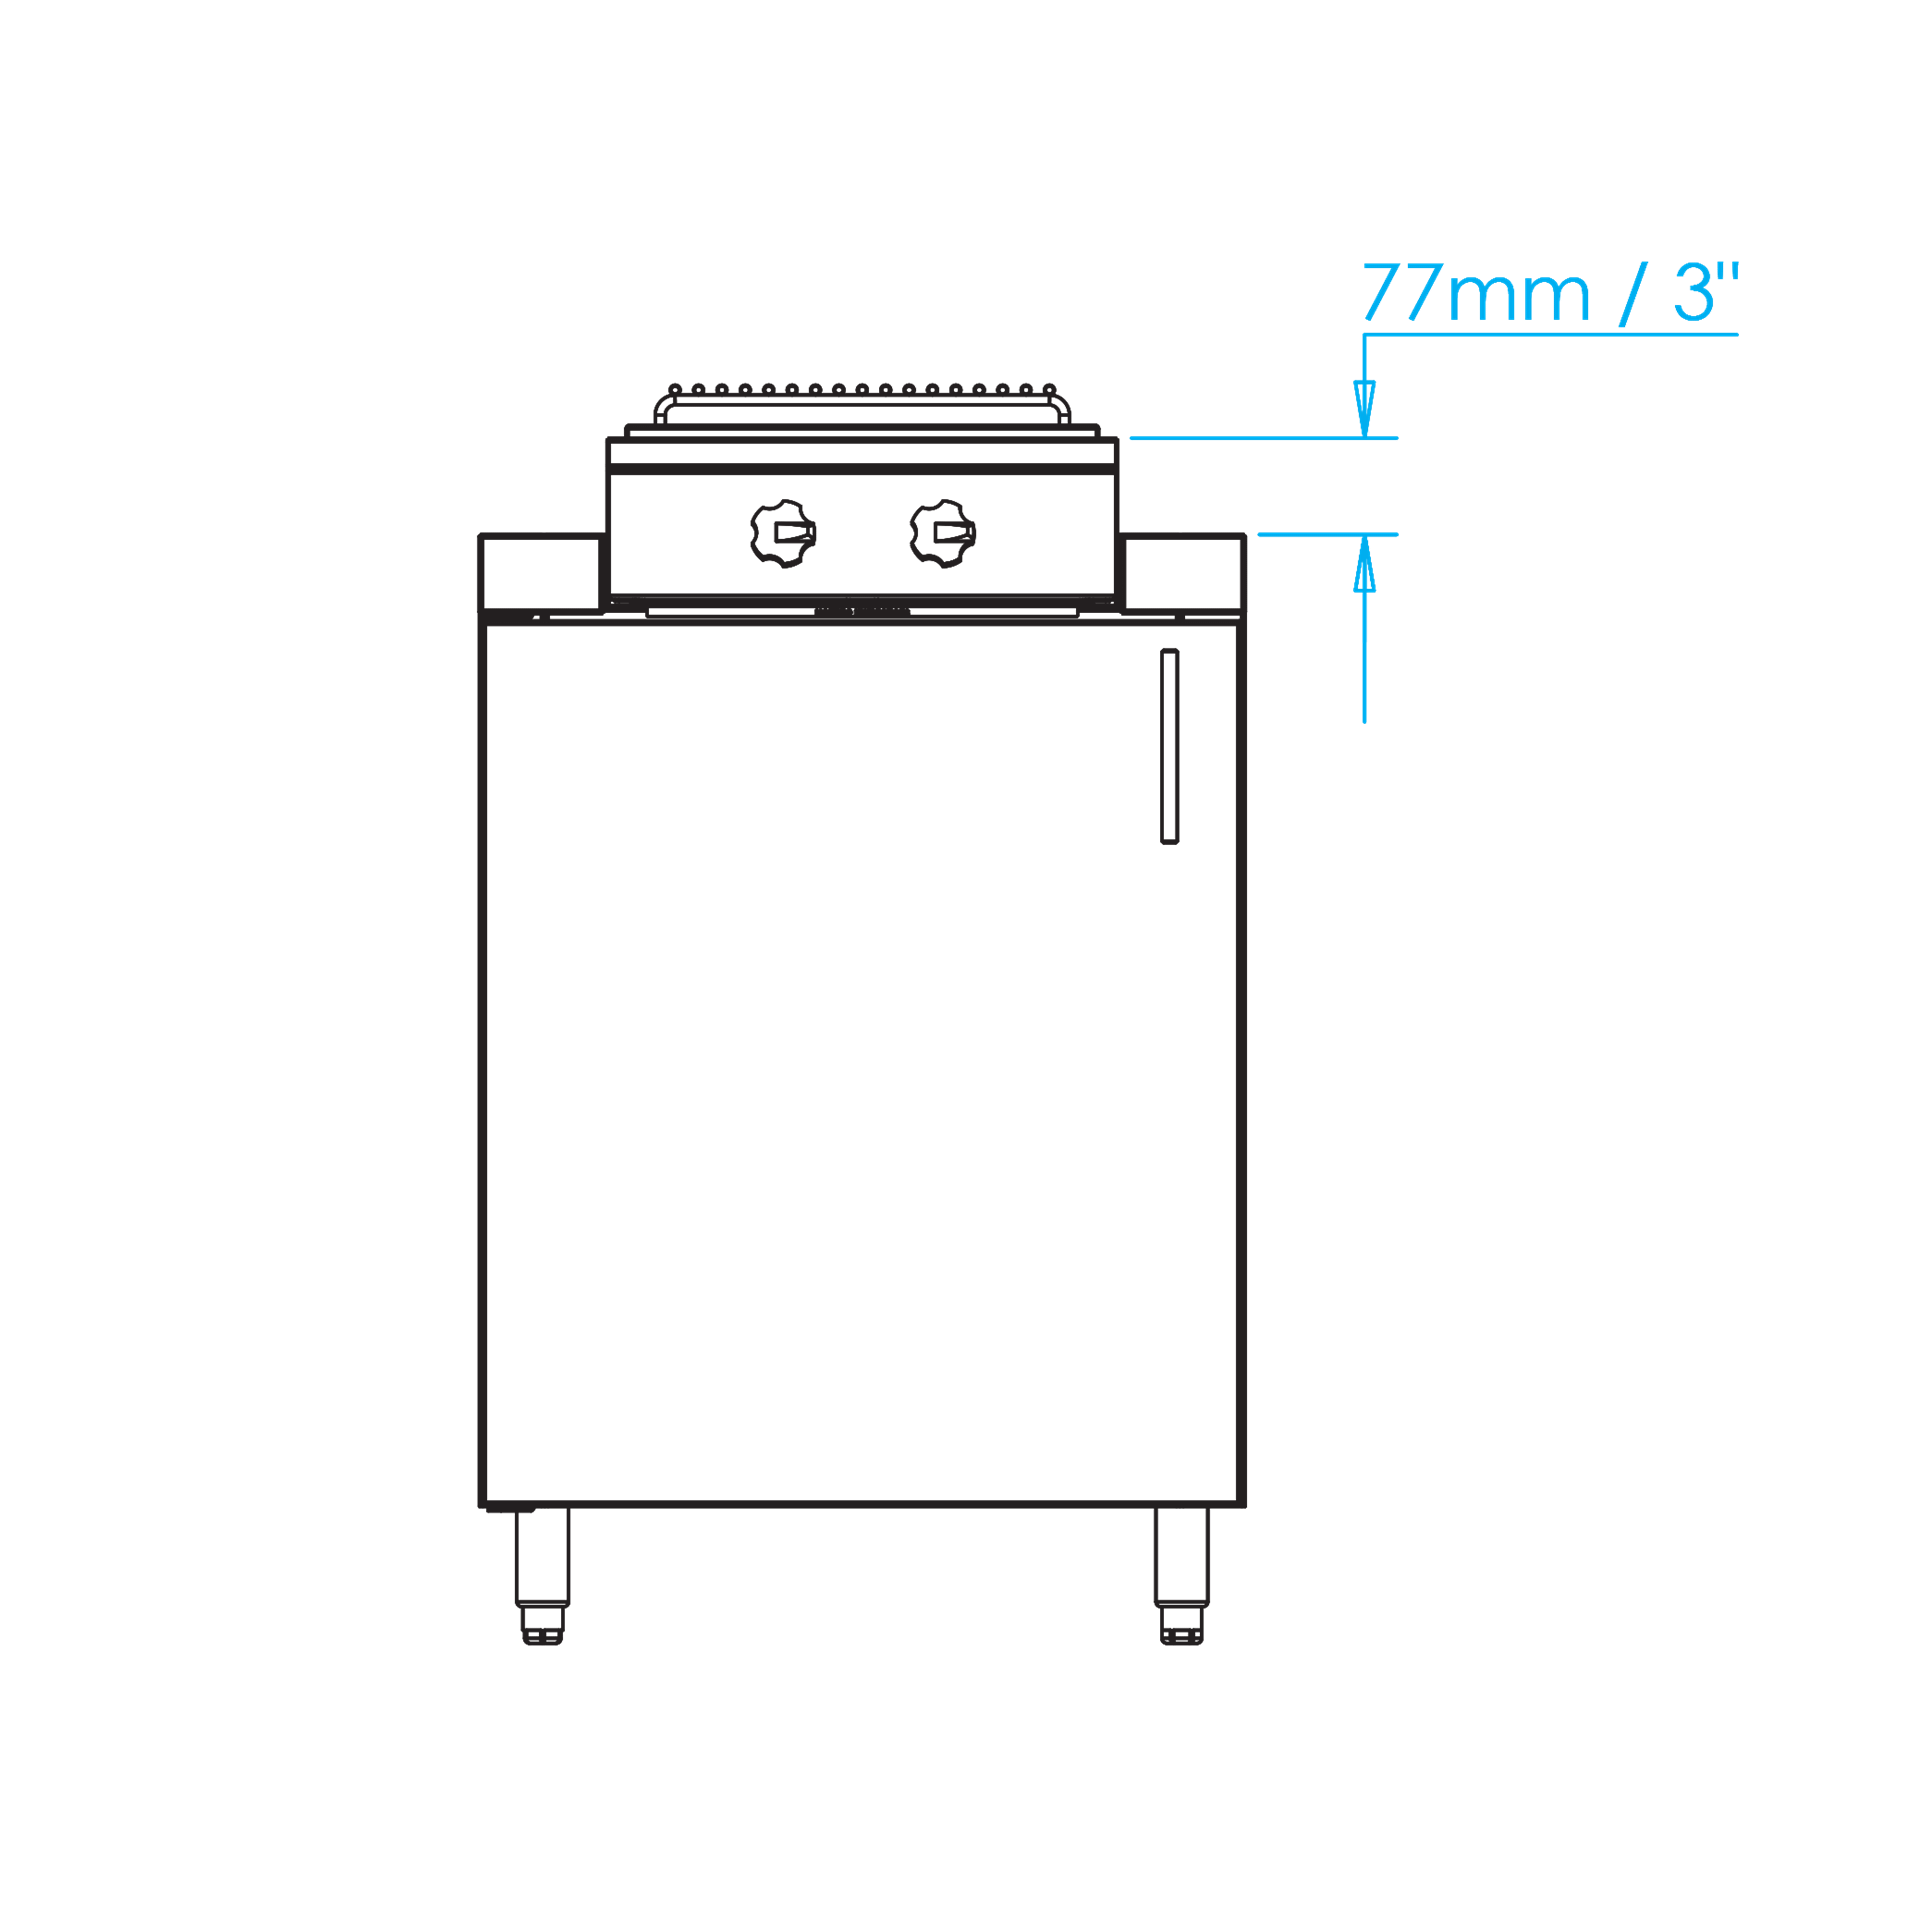 Built-in Double with Power Wok Burner Dimensions Image